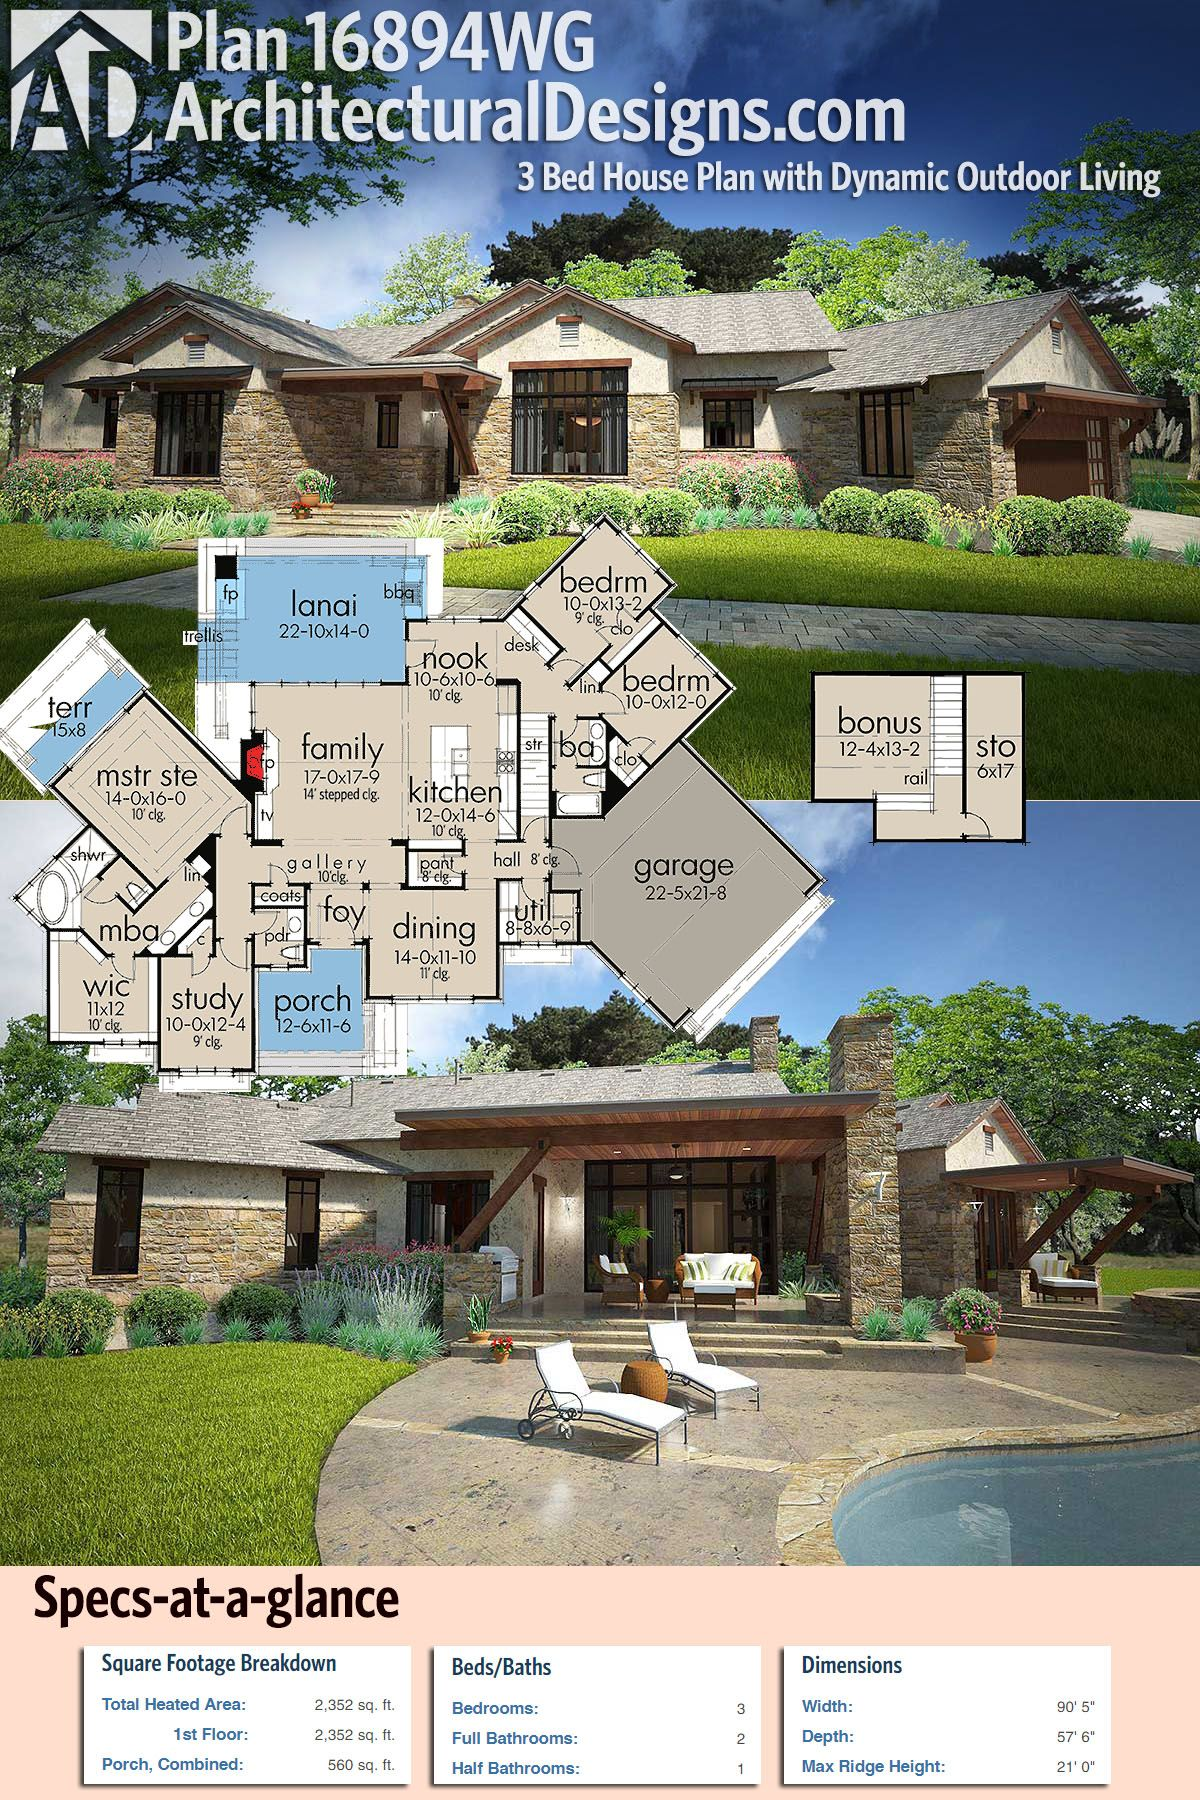 Plan 16894WG 3 Bed House Plan with Dynamic Outdoor Living